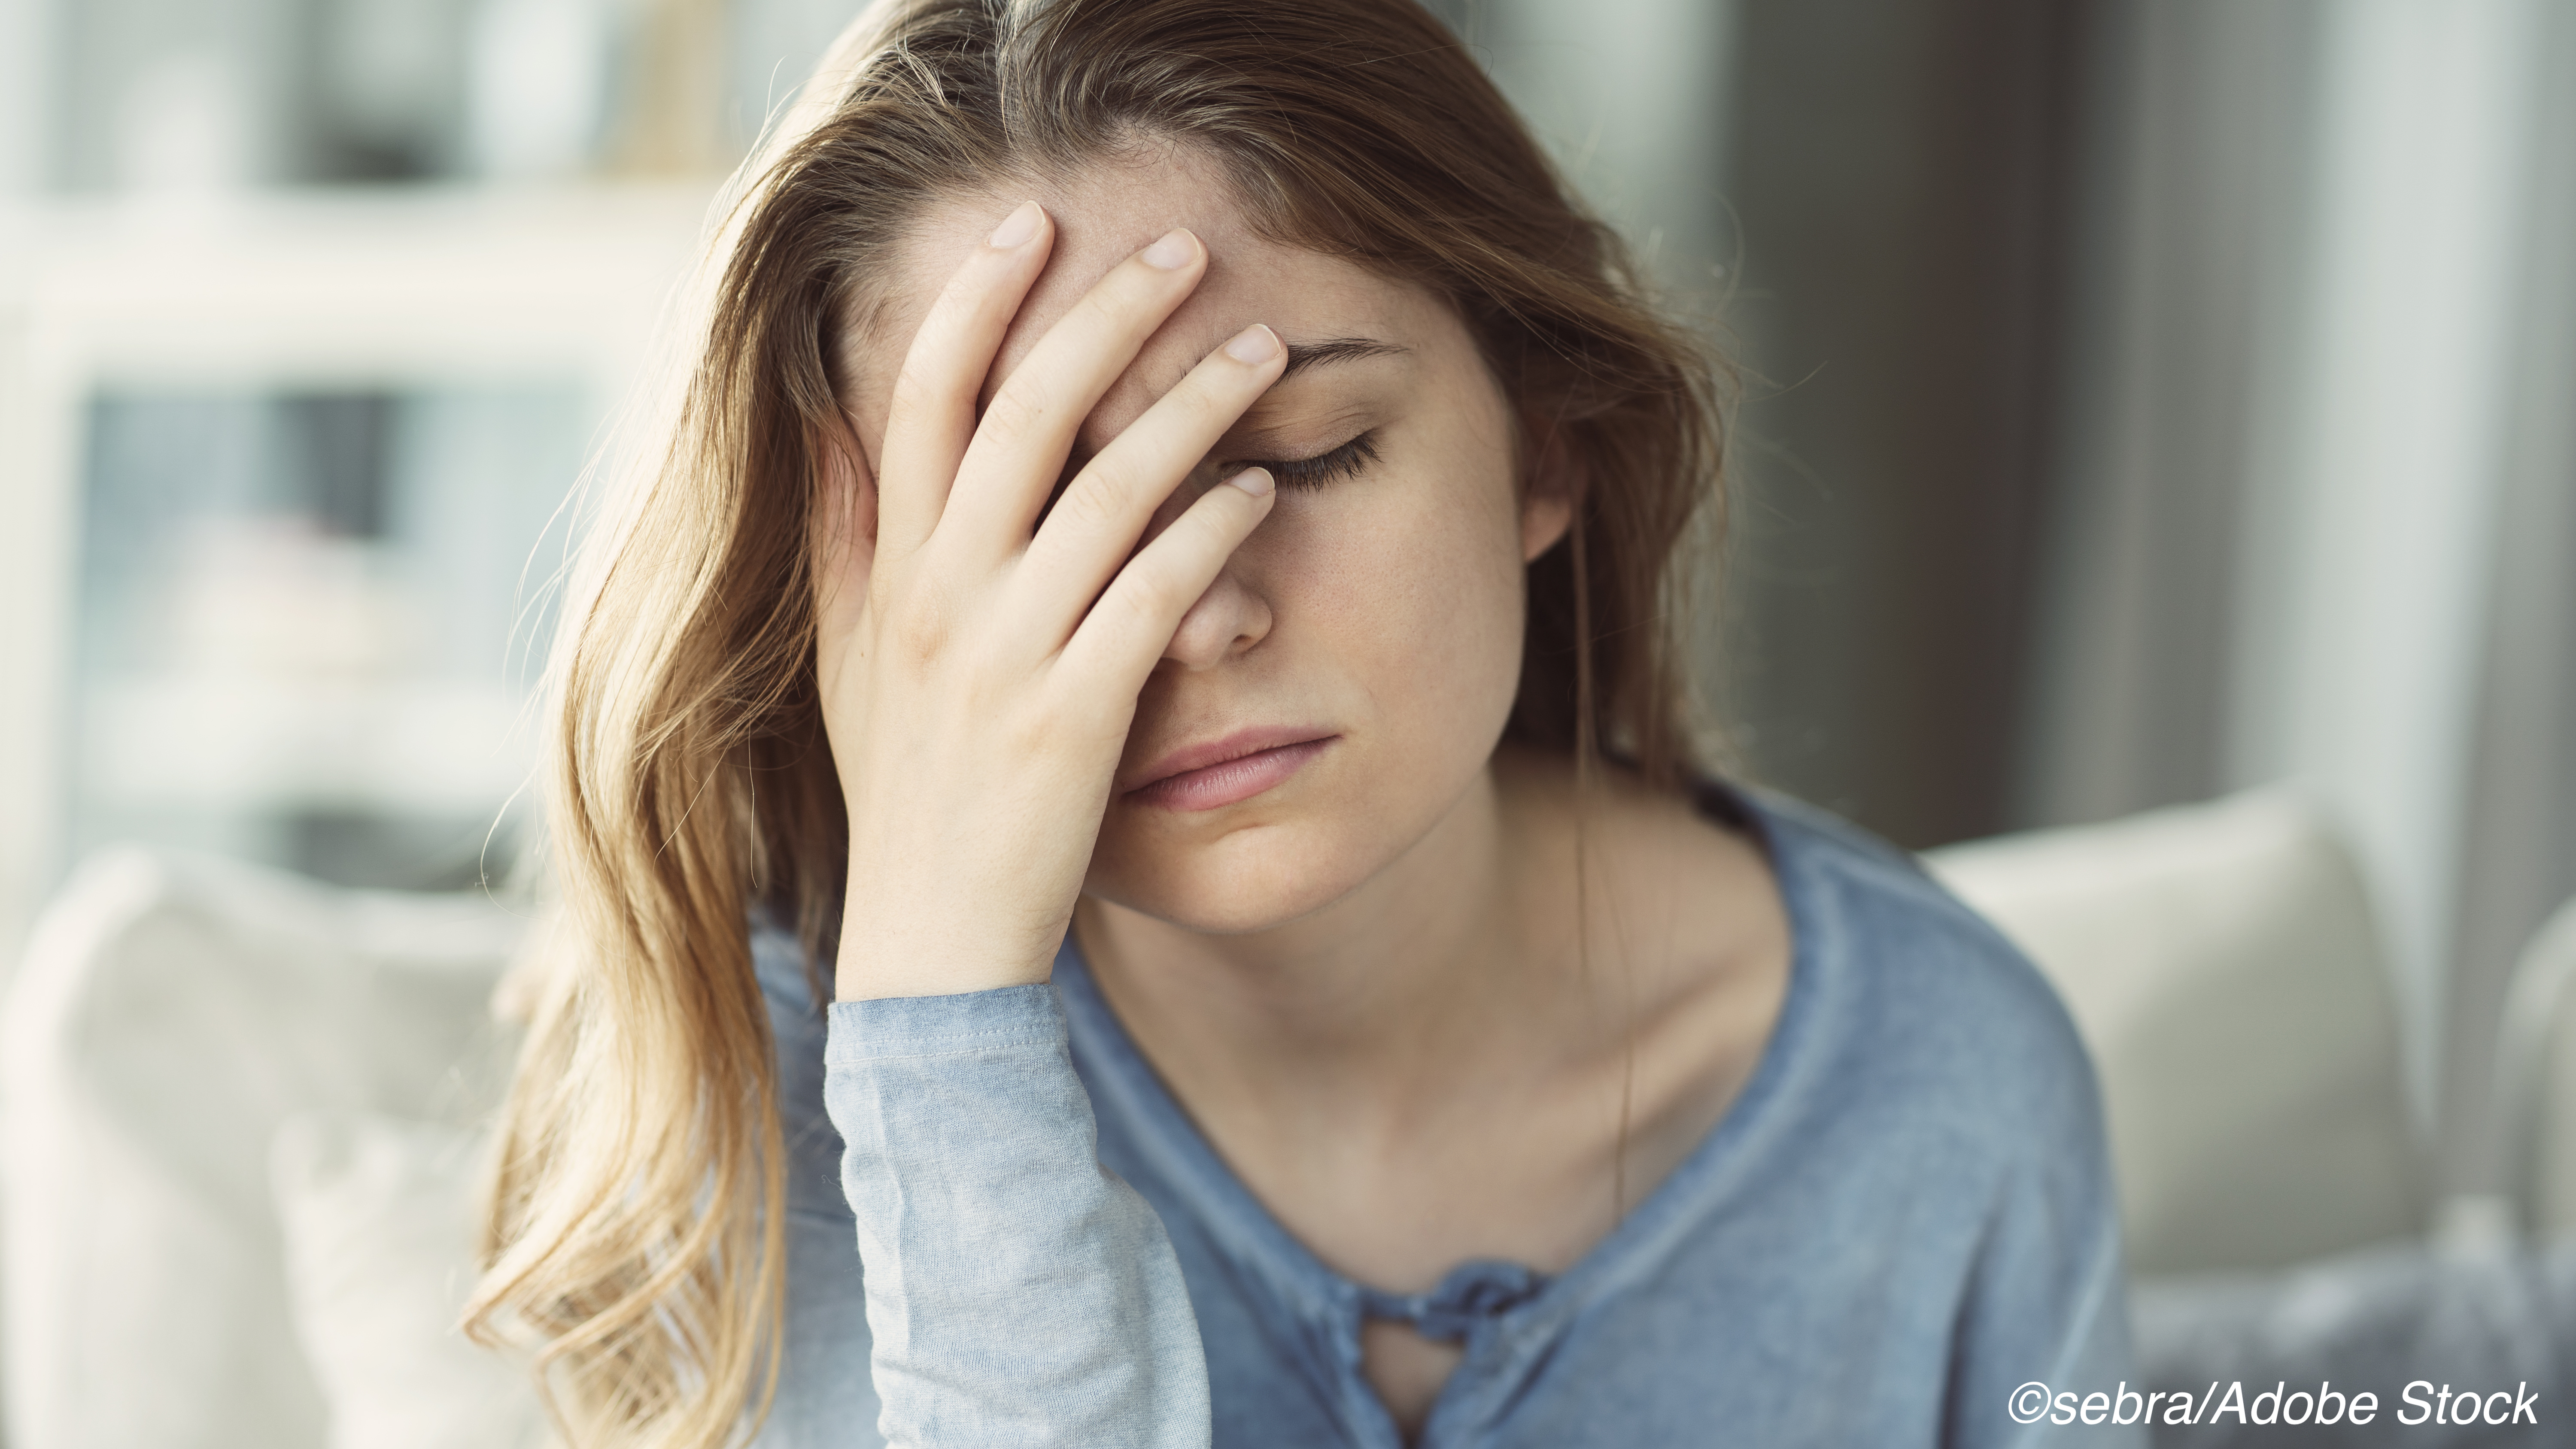 Pregnancy Planning Put on Hold For Many Women with Migraine